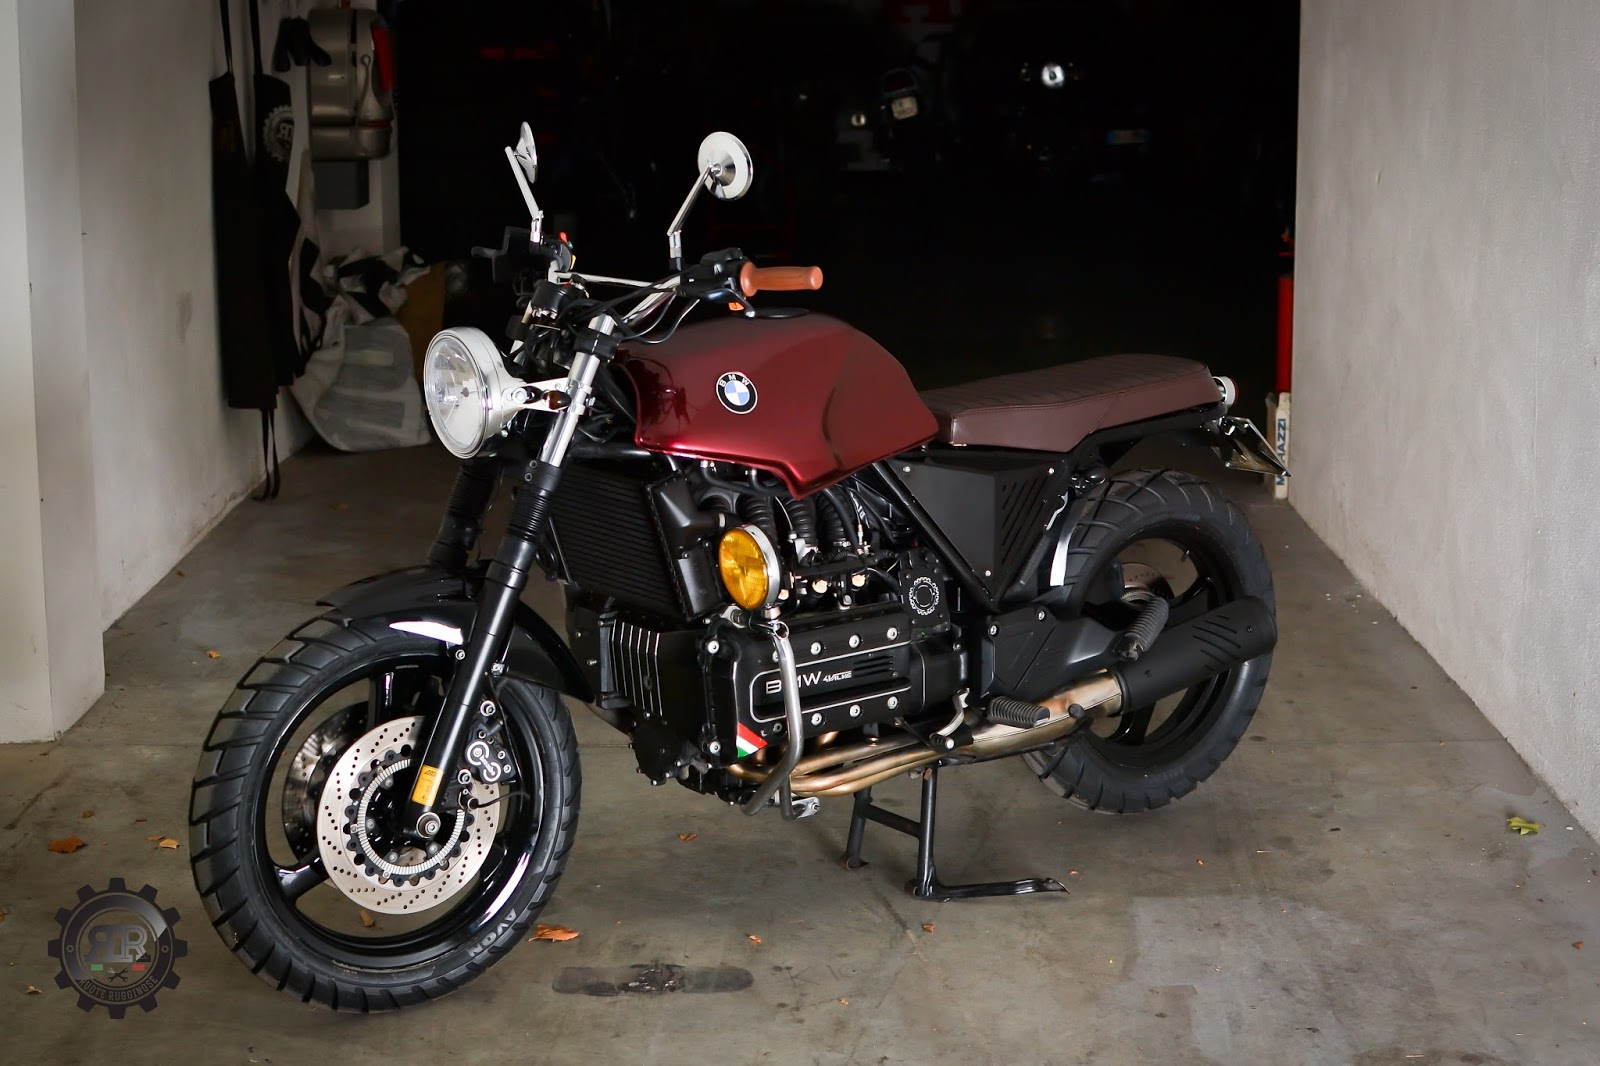 ruote rugginose bmw k100 scrambler ruote rugginose. Black Bedroom Furniture Sets. Home Design Ideas